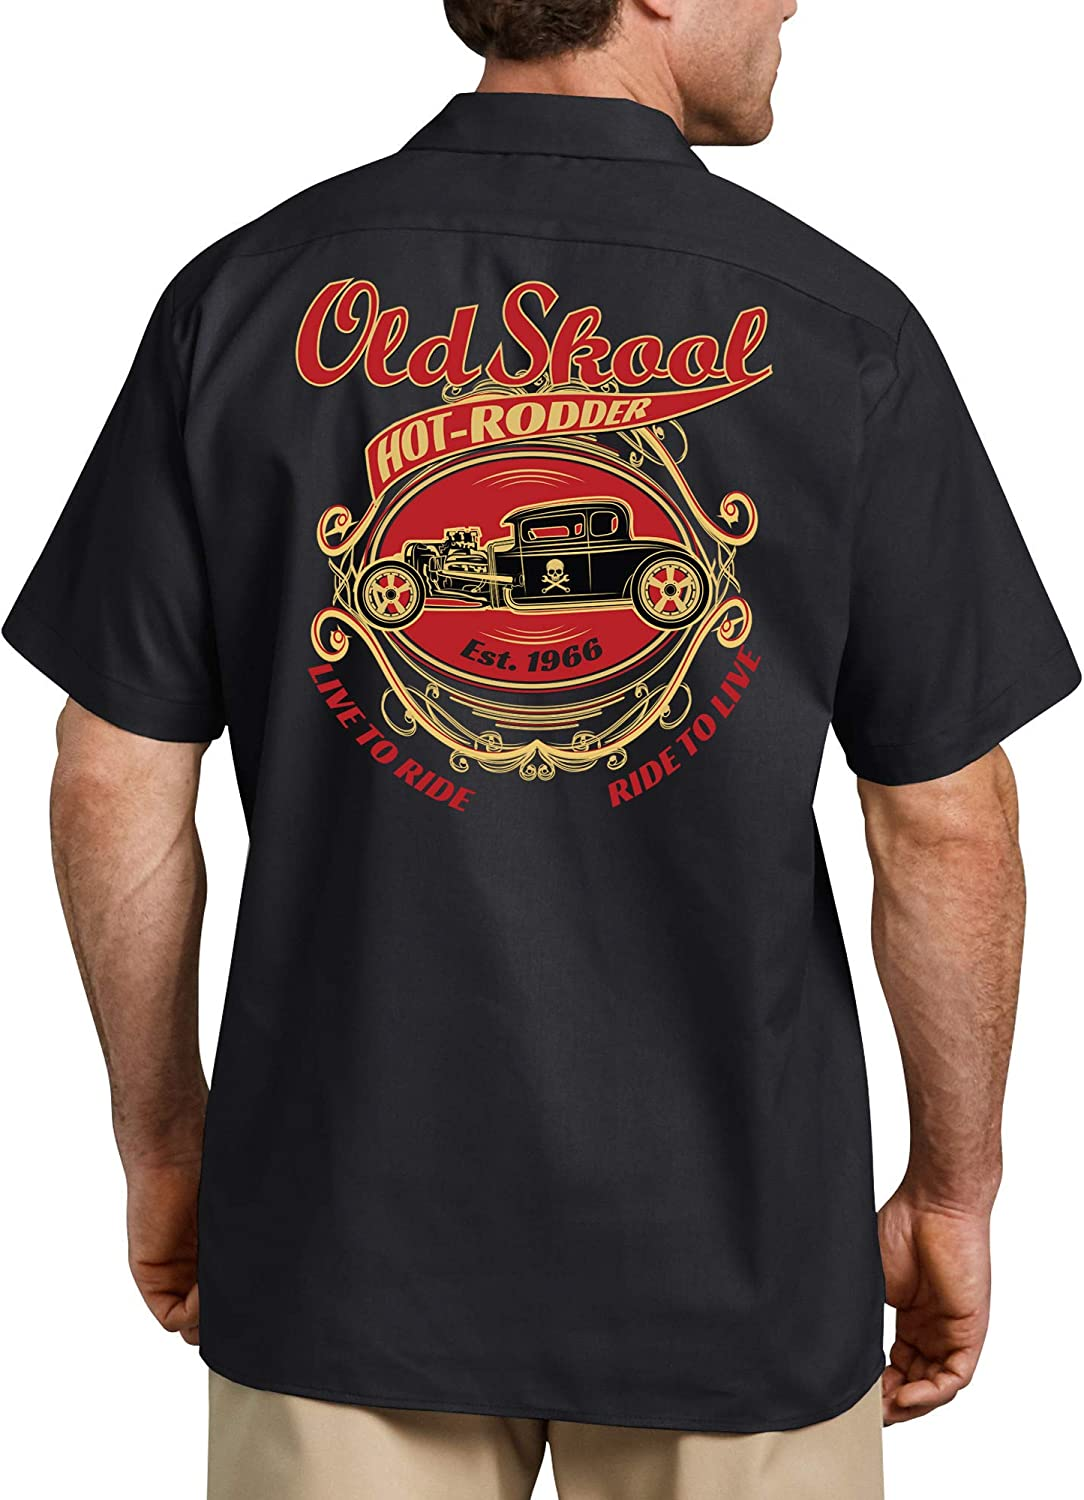 BASTARD HOT ROD MOTOR CLUB CUSTOMS Logo Sign Racing Patch Iron on Applique Embroidered T shirt Jacket BY SURAPAN